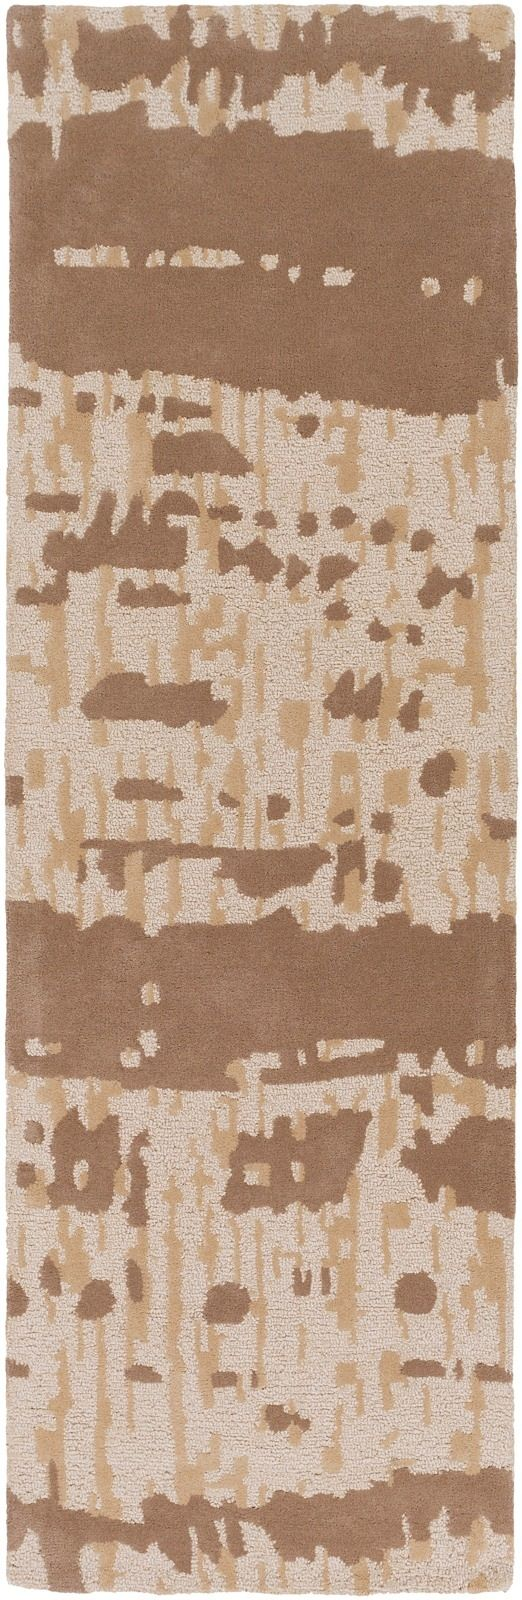 surya bali contemporary area rug collection